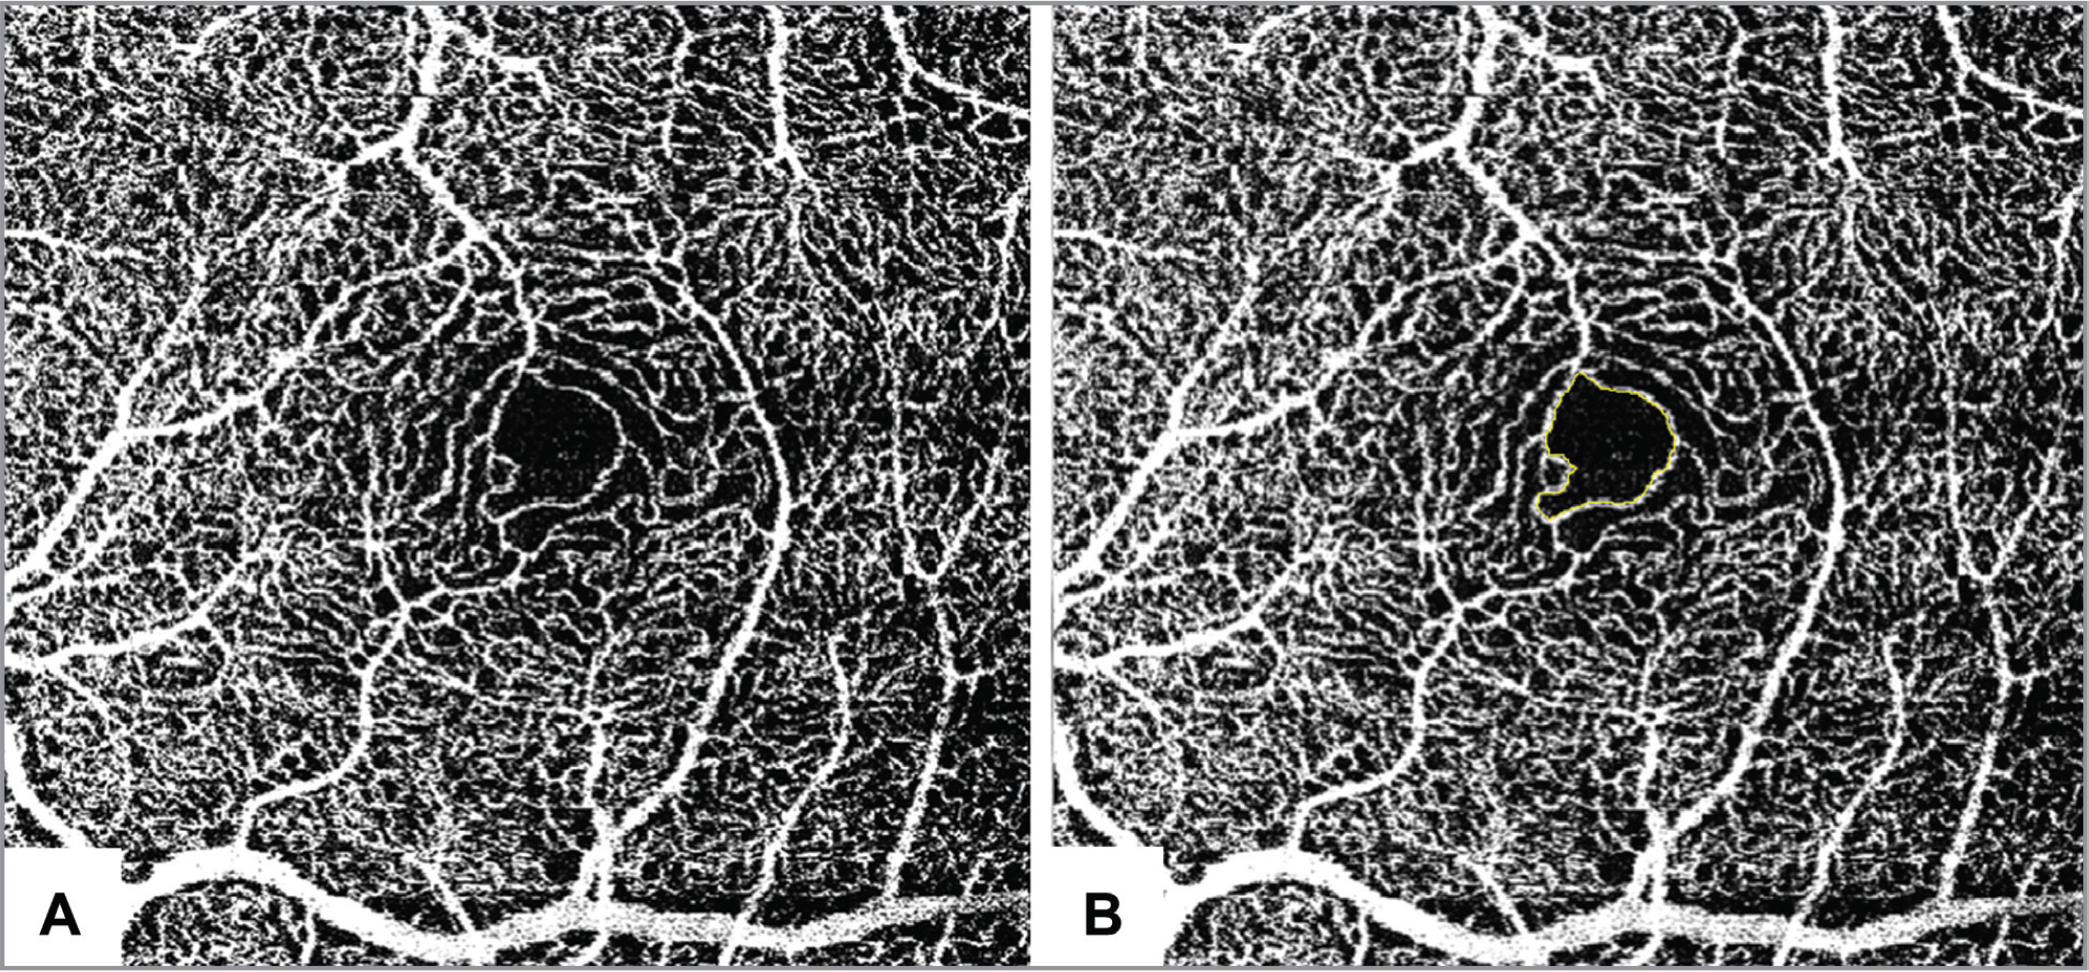 Optical coherence tomography angiography (OCTA) of the left eye of a 33-year-old, healthy male showing the foveal avascular zone before (A) and after (B) delineation with ImageJ software (National Institutes of Health, Bethesda, MD).